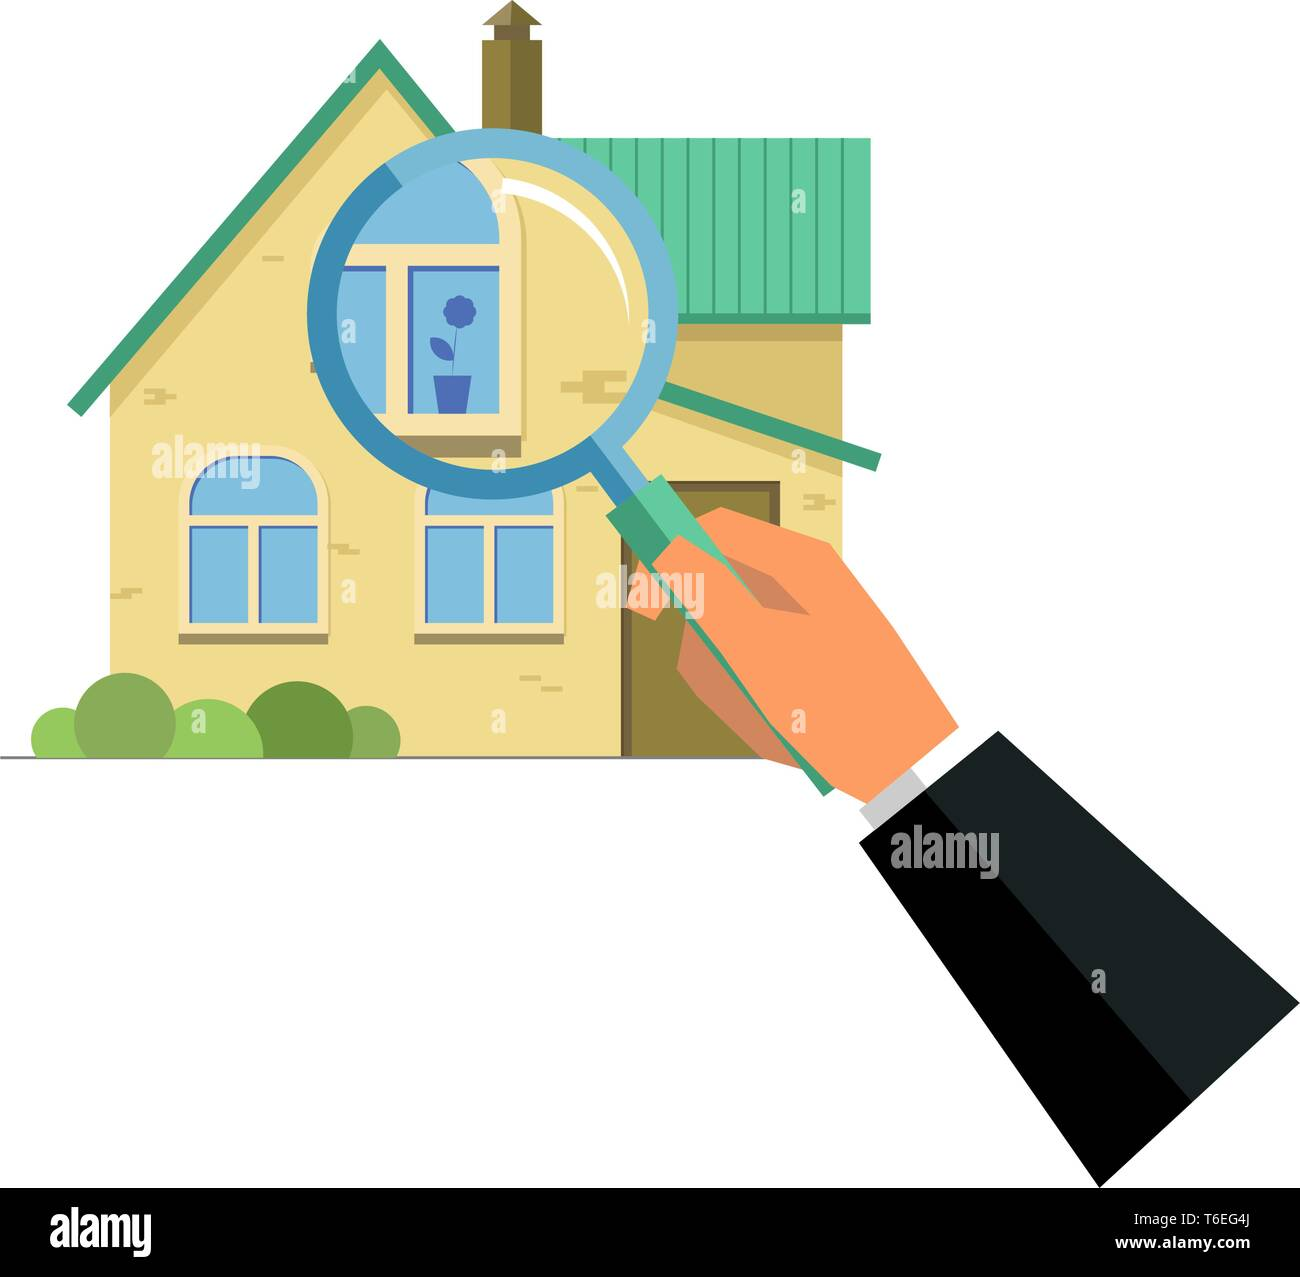 Human hand holding magnifying glass with house, home selection, property project, real estate being checked concept, flat style isolated illustration Stock Vector